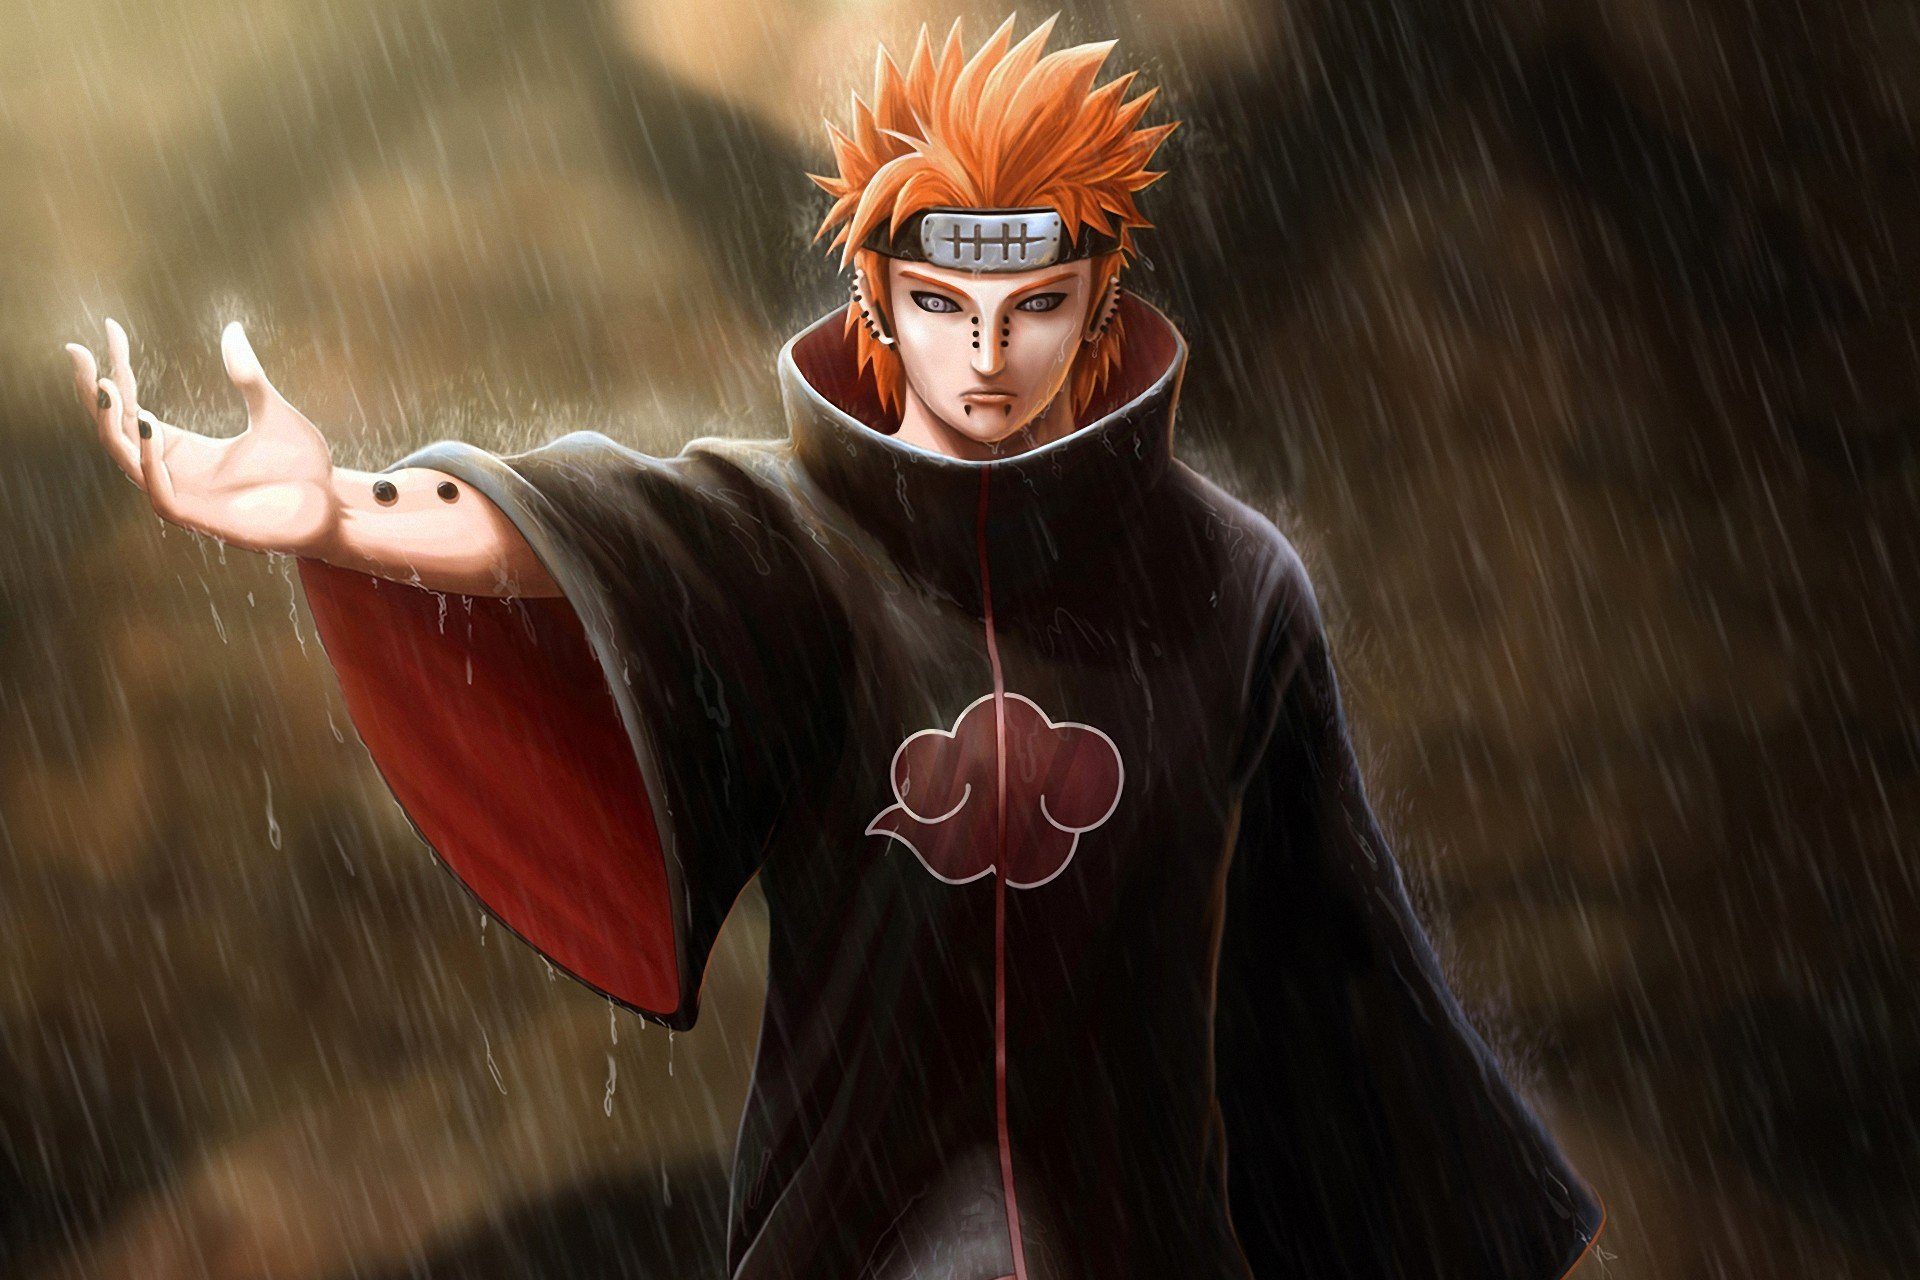 naruto wallpaper hd 1920x1280 396612